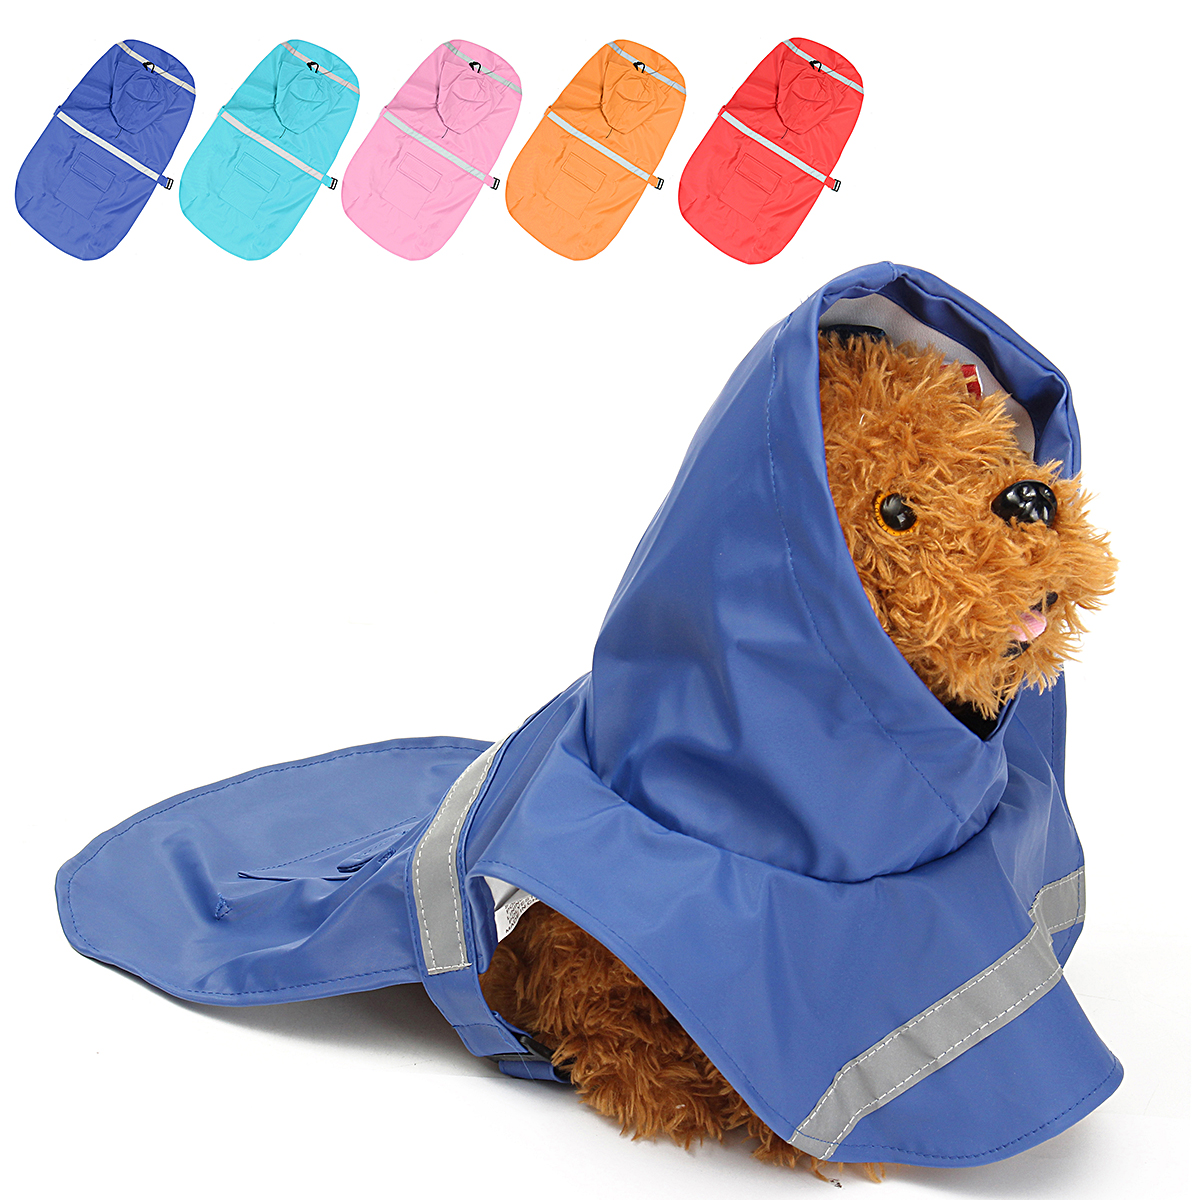 XS Waterproof Dog Raincoat Pet Clothes Hoodie Jacket Poncho Outdoor with Reflective Strip For Dog